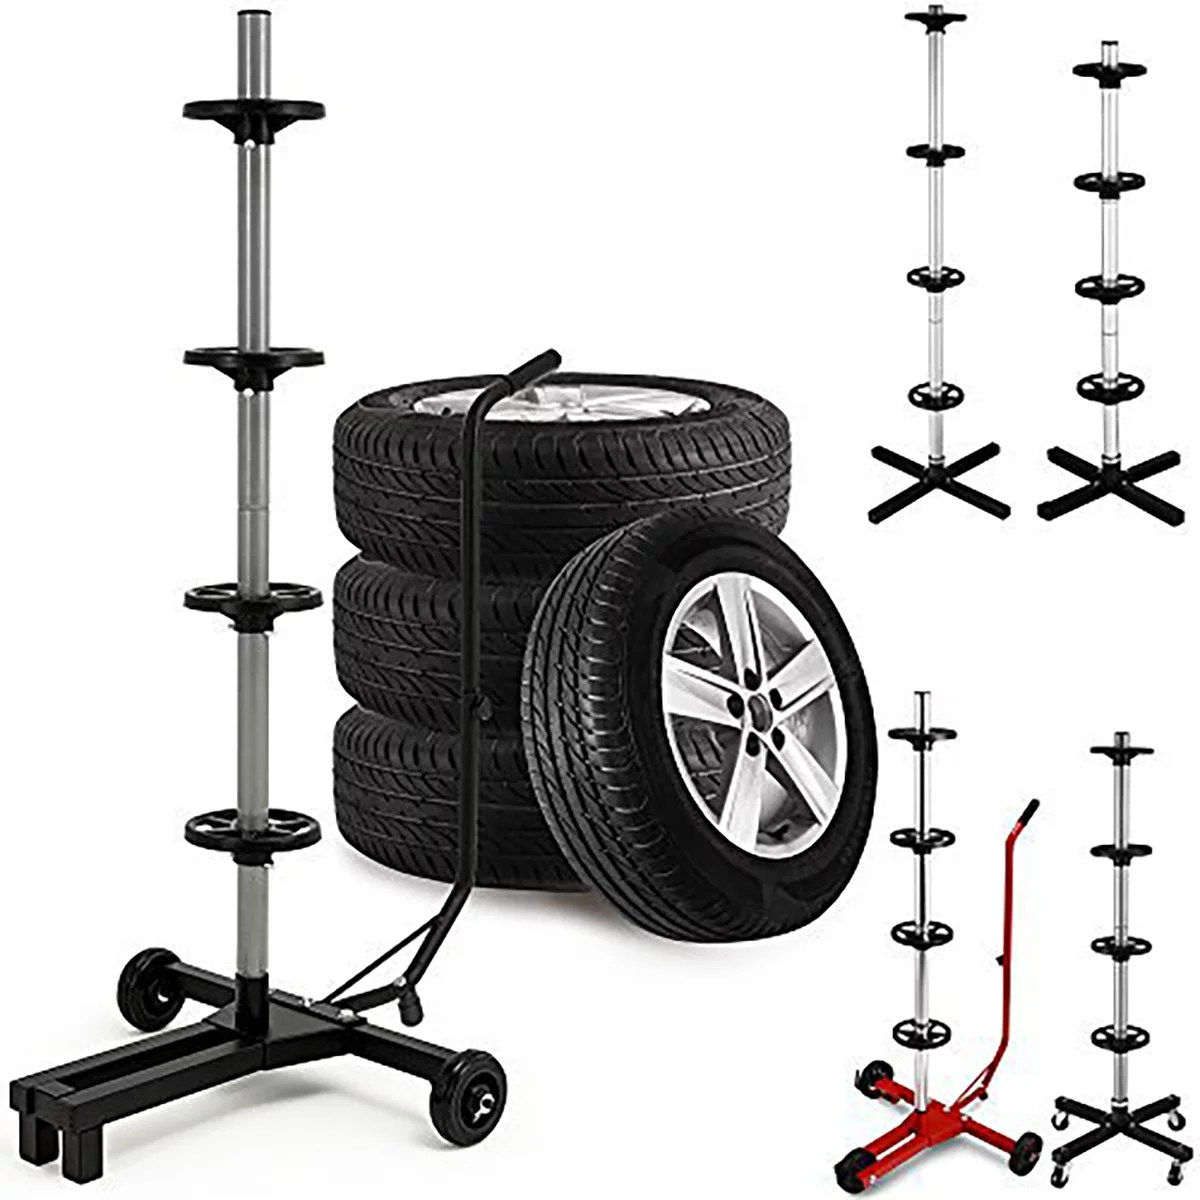 Wheel Storage Solutions - Tyre Trees